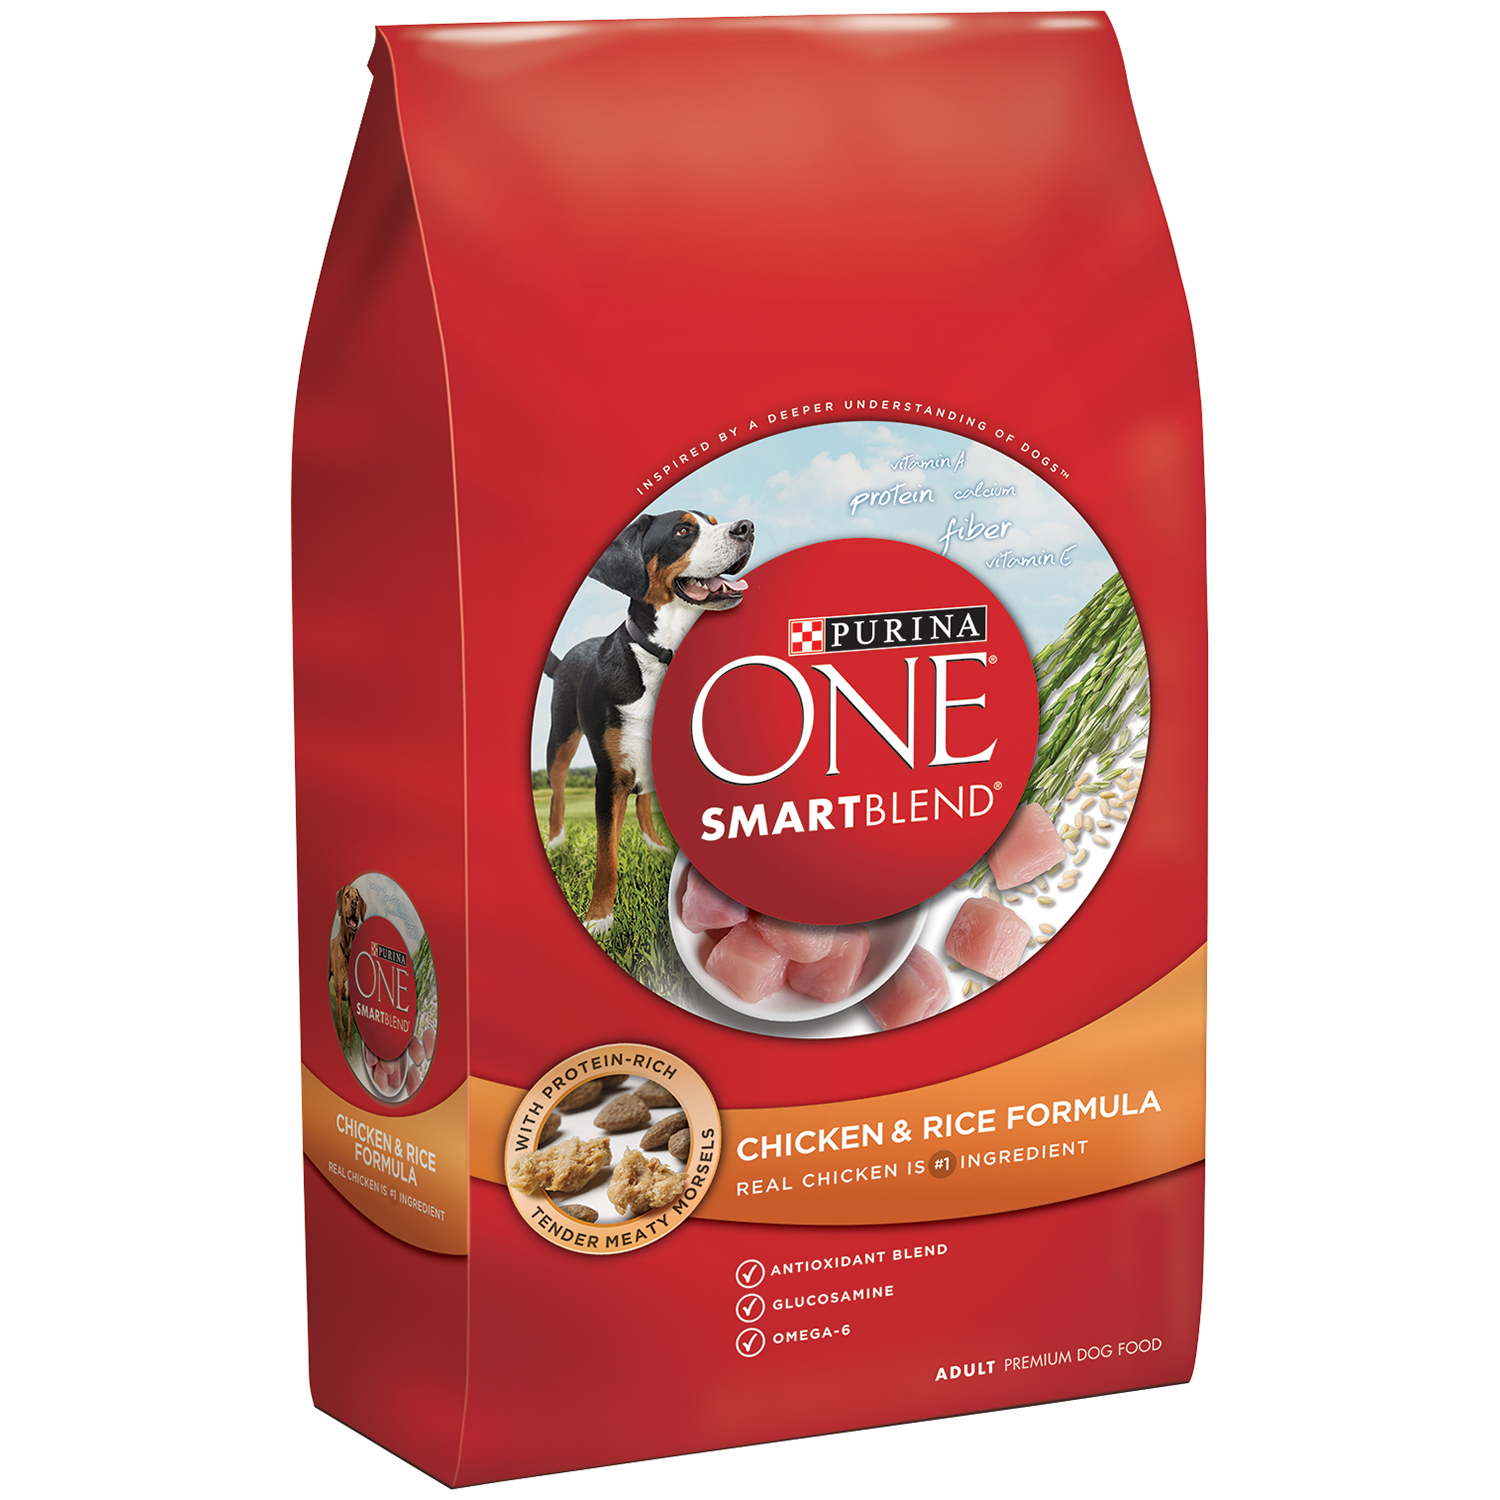 Purina ONE SmartBlend Chicken & Rice Formula Adult Premium Dog Food 16.5 lb. Bag